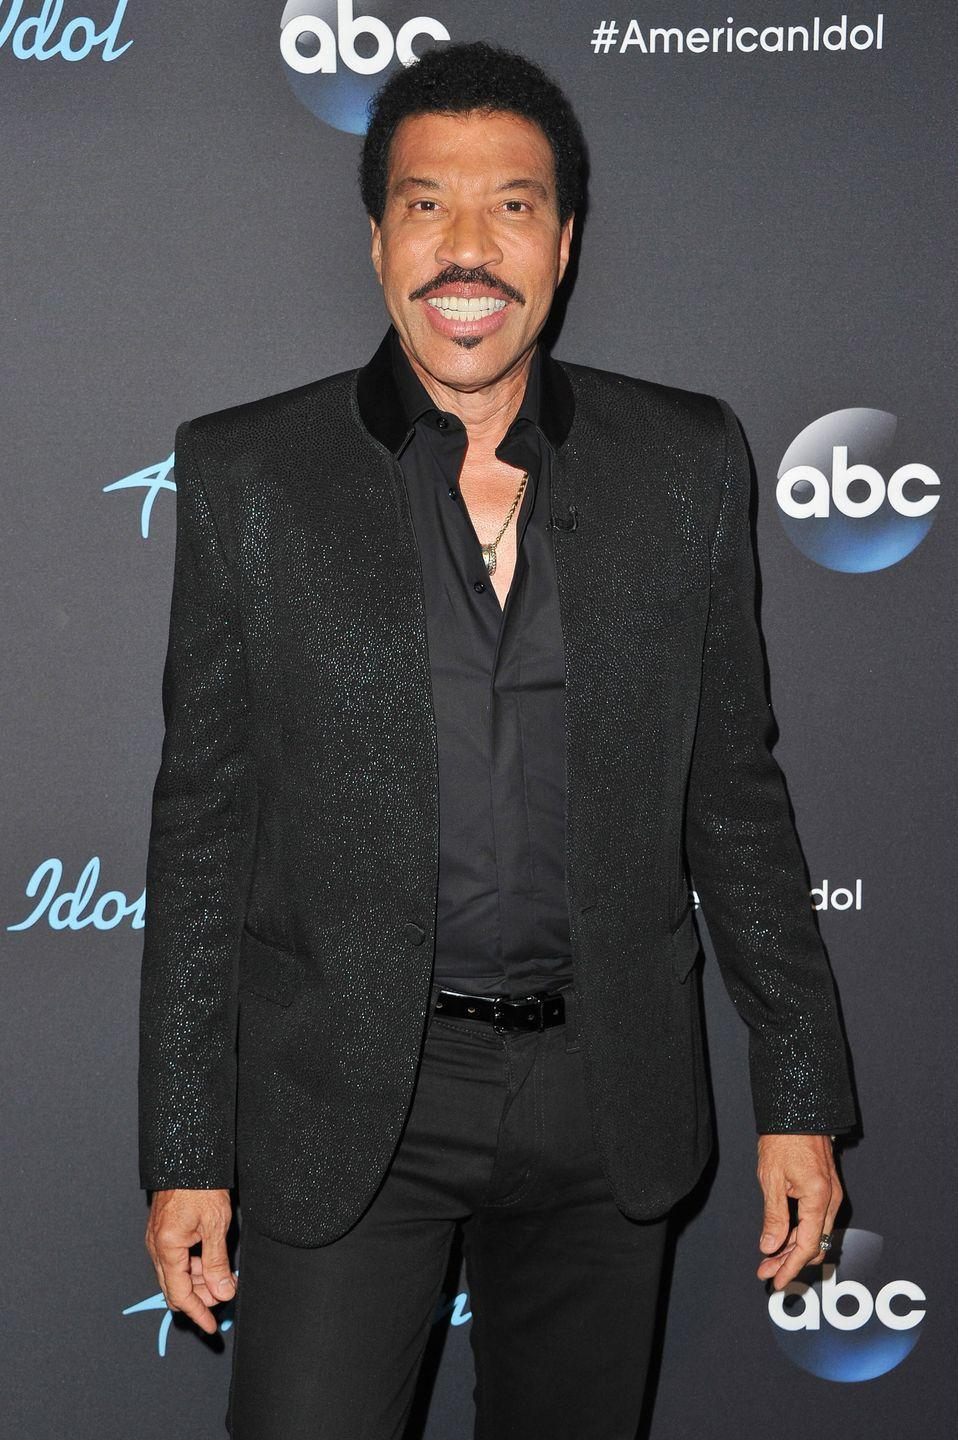 <p>Although Luke Bryan is the country star on <em>American Idol</em>, he's not the only southern judge on the show. Lionel once considered becoming a priest but decided on a career in music instead.</p>